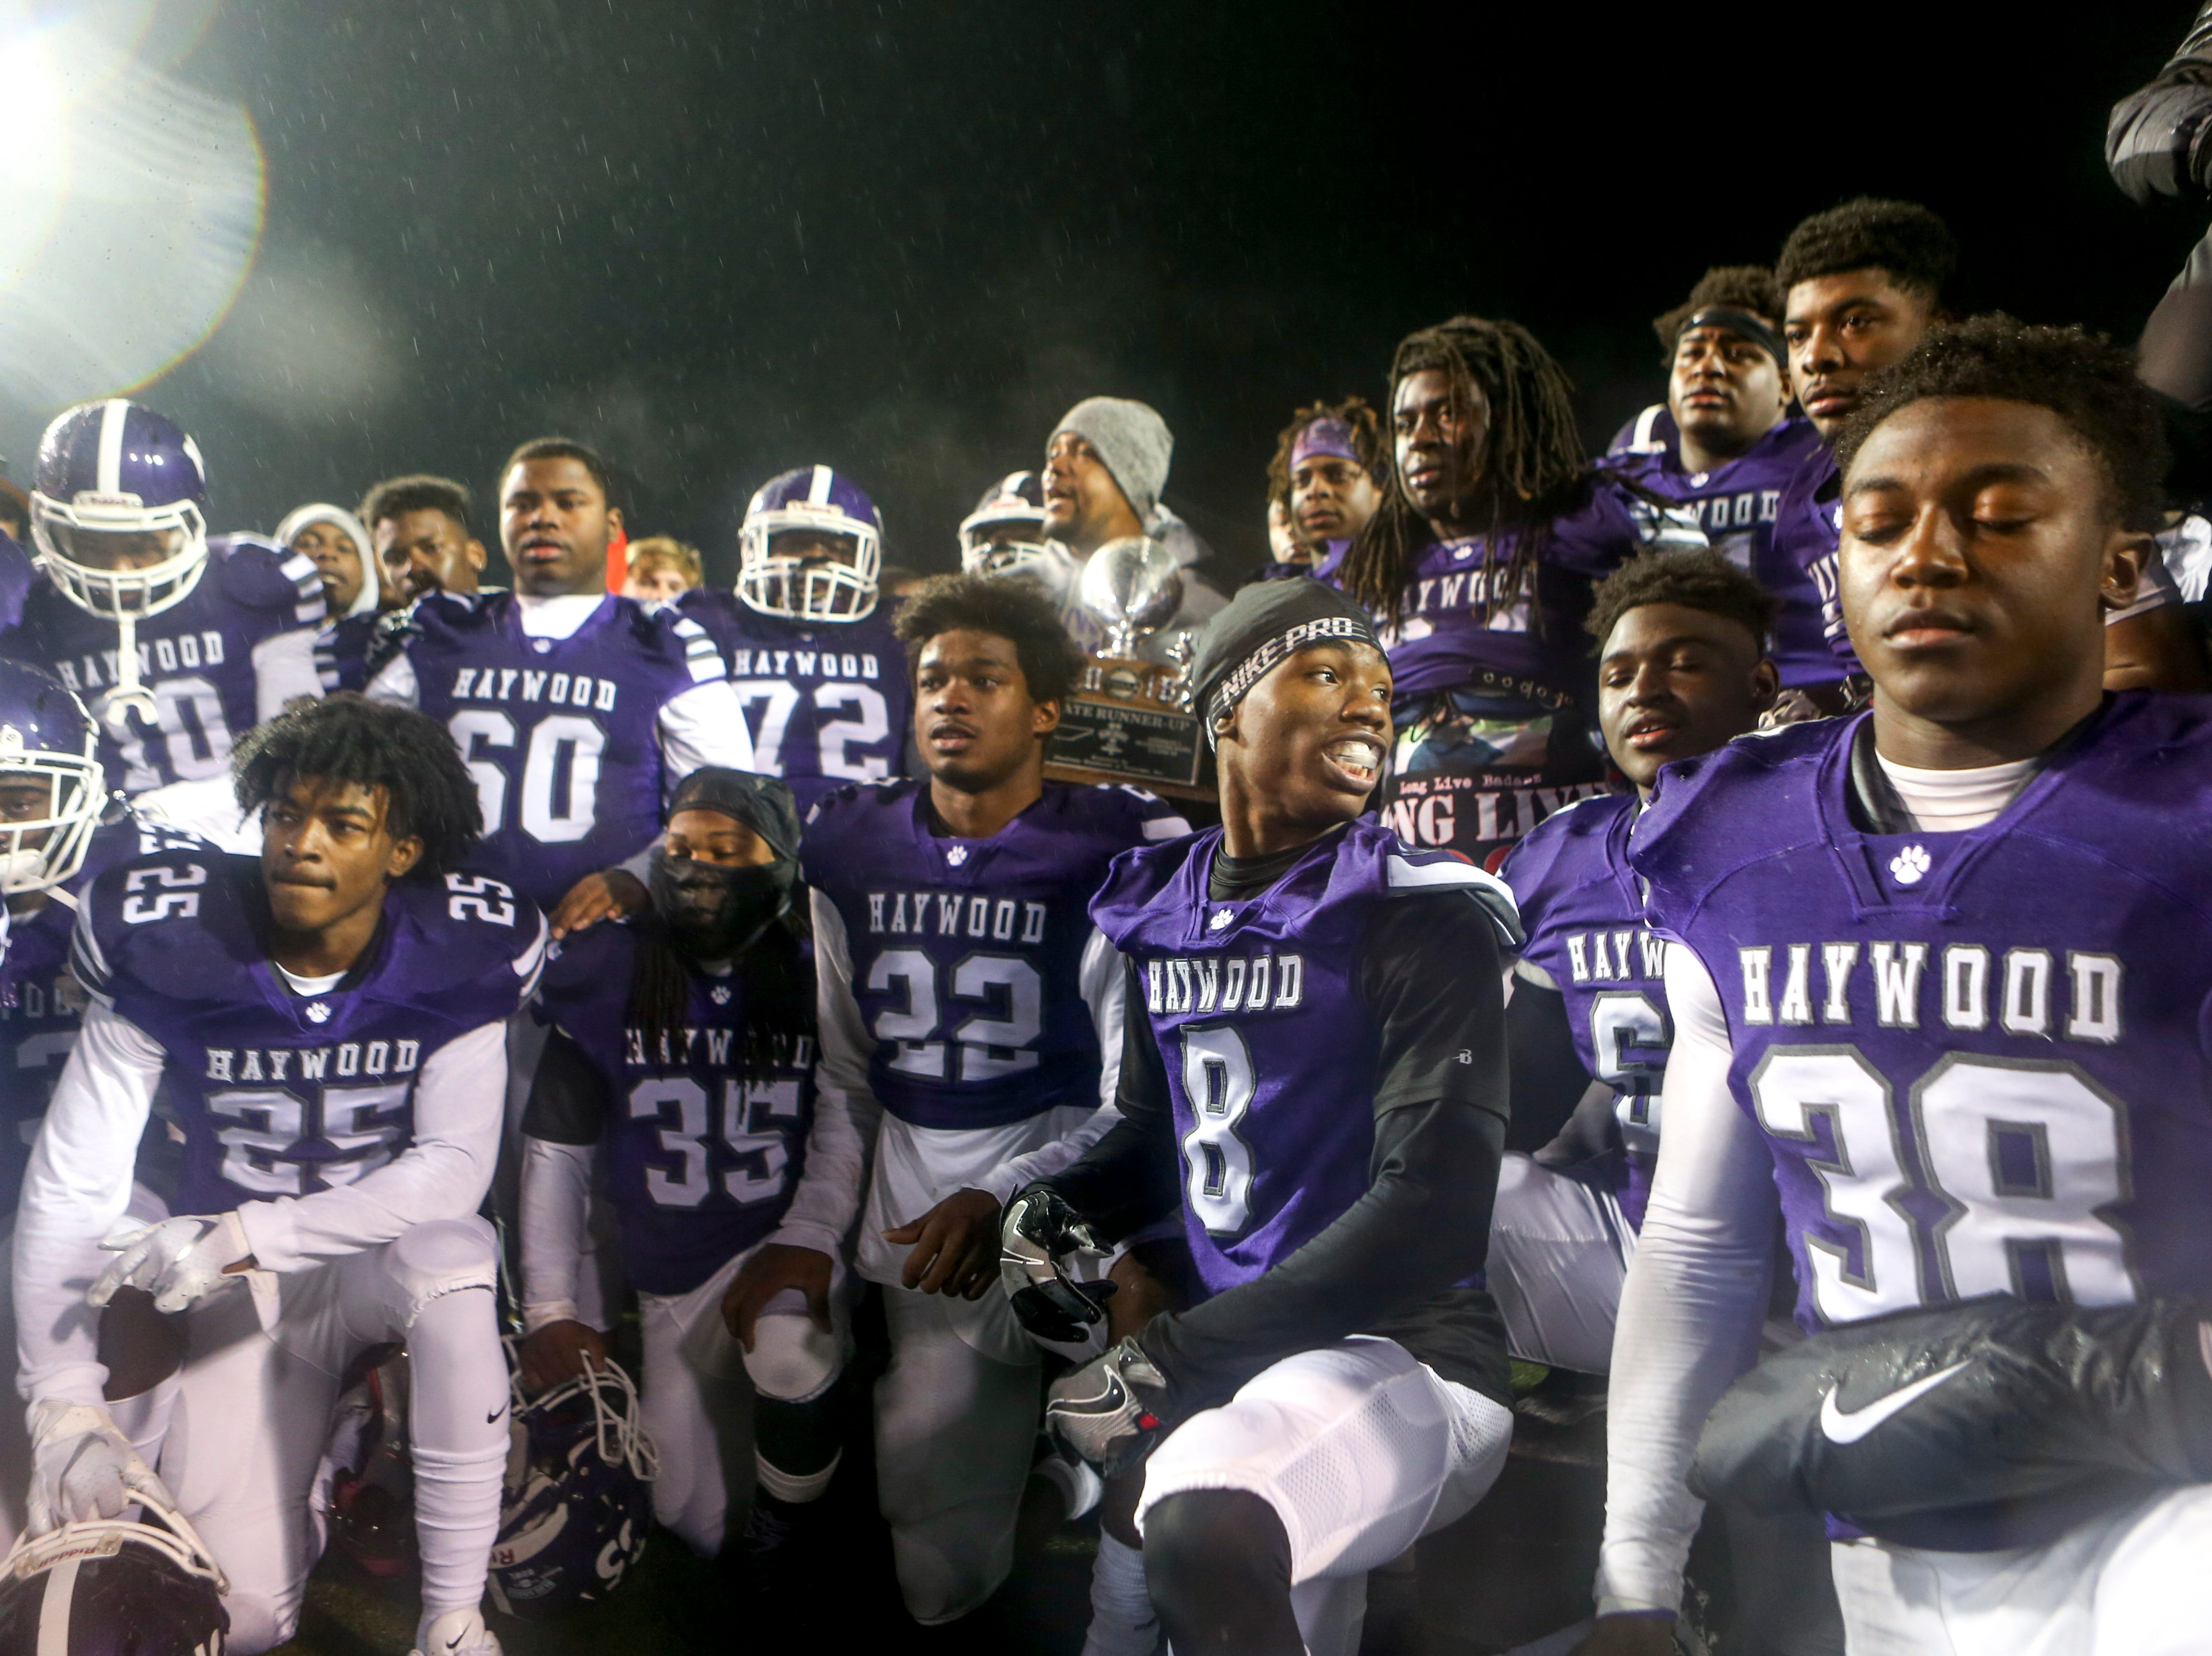 Haywood players line up for a team photo after losing the Class 4A Blue Cross Bowl between Haywood and Greeneville at Tennessee Tech's Tucker Stadium in Cookeville, Tenn., on Thursday, Nov. 29, 2018.